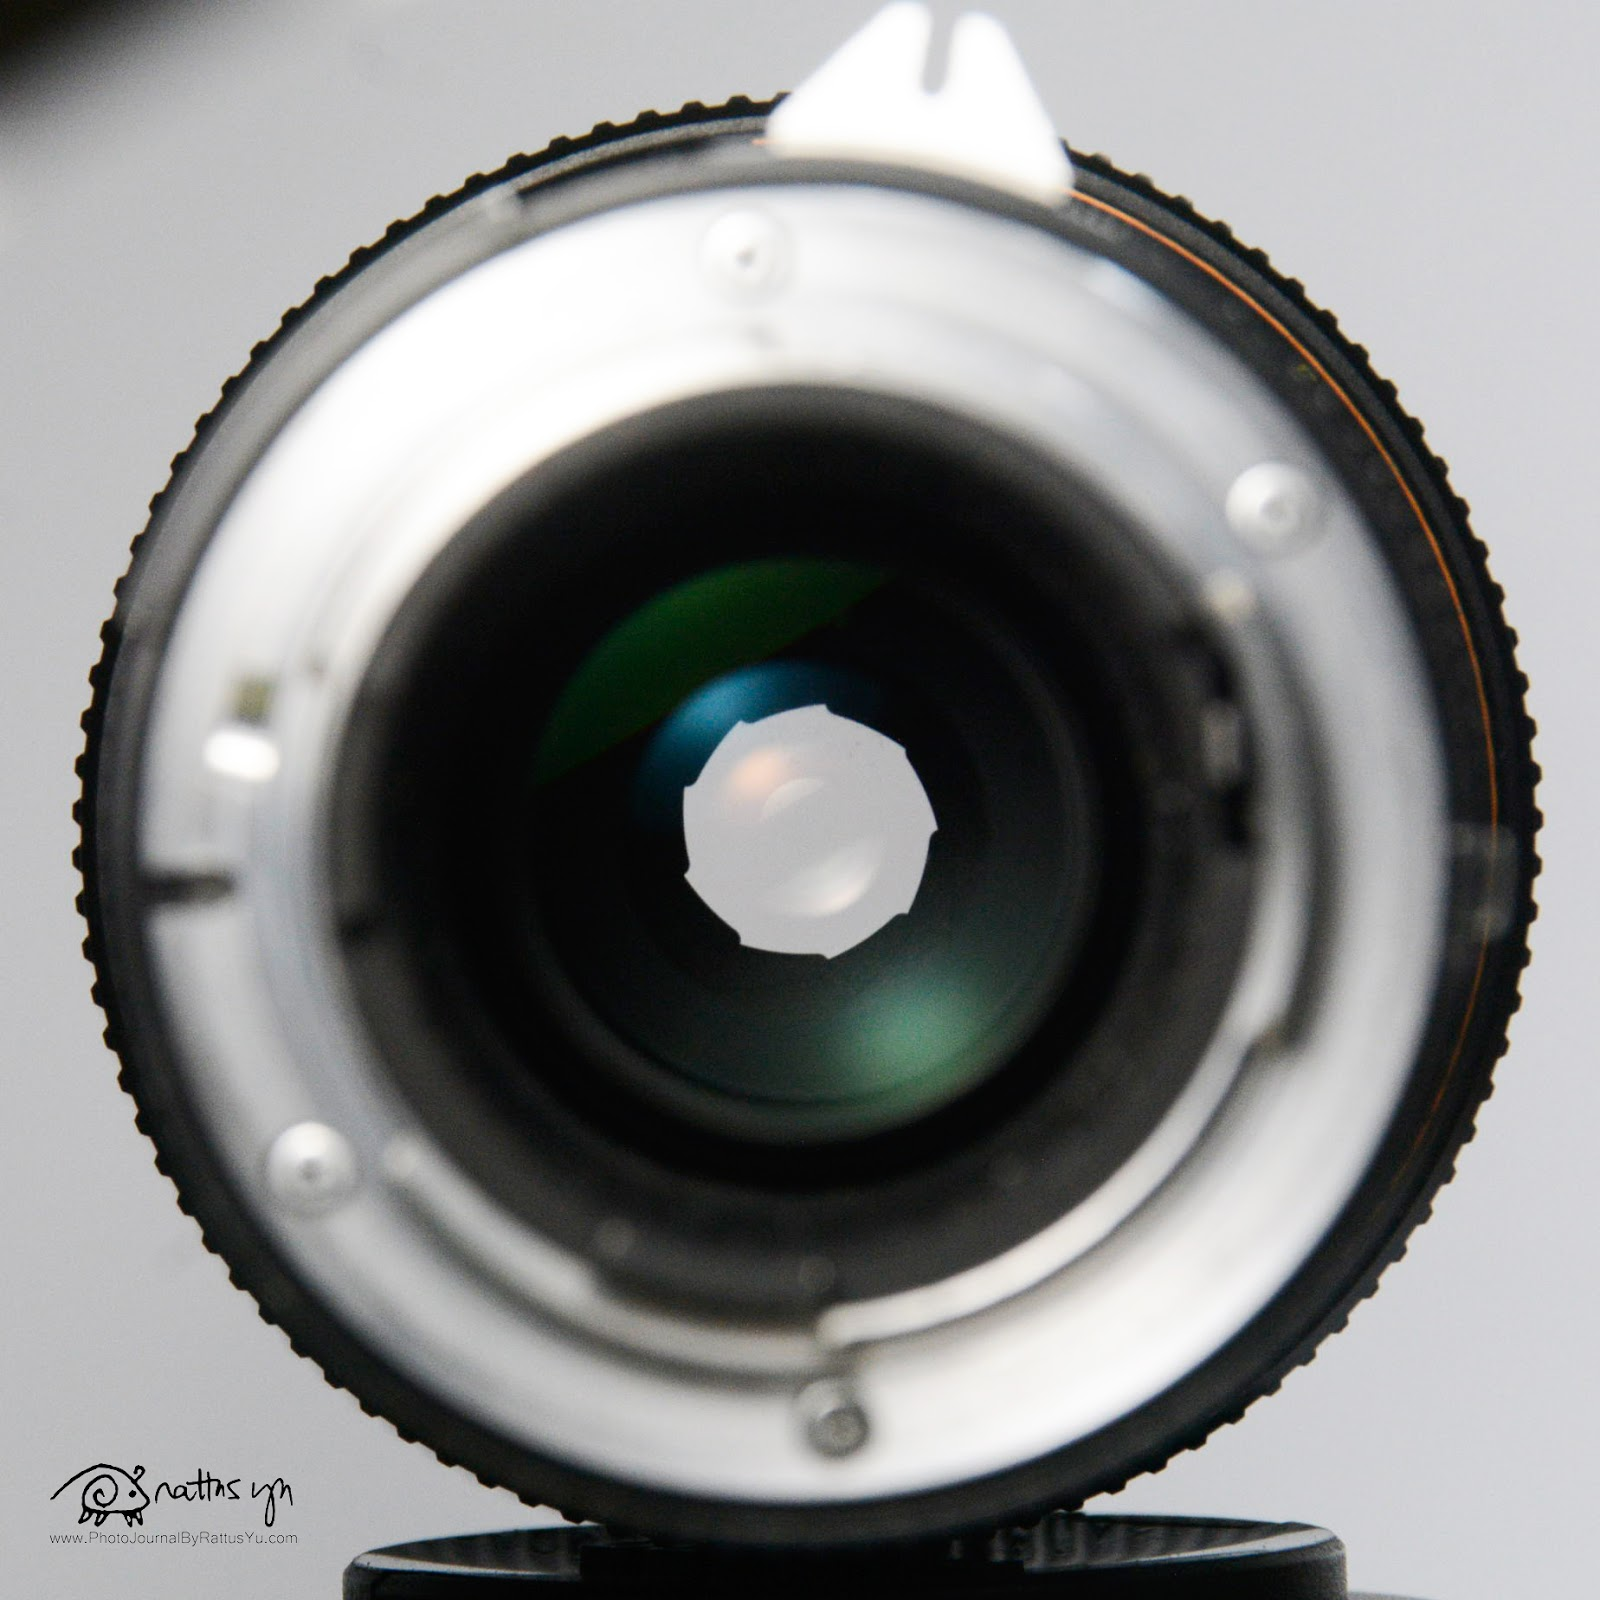 Zoom-Nikkor 100-300mm f/5.6 Macro